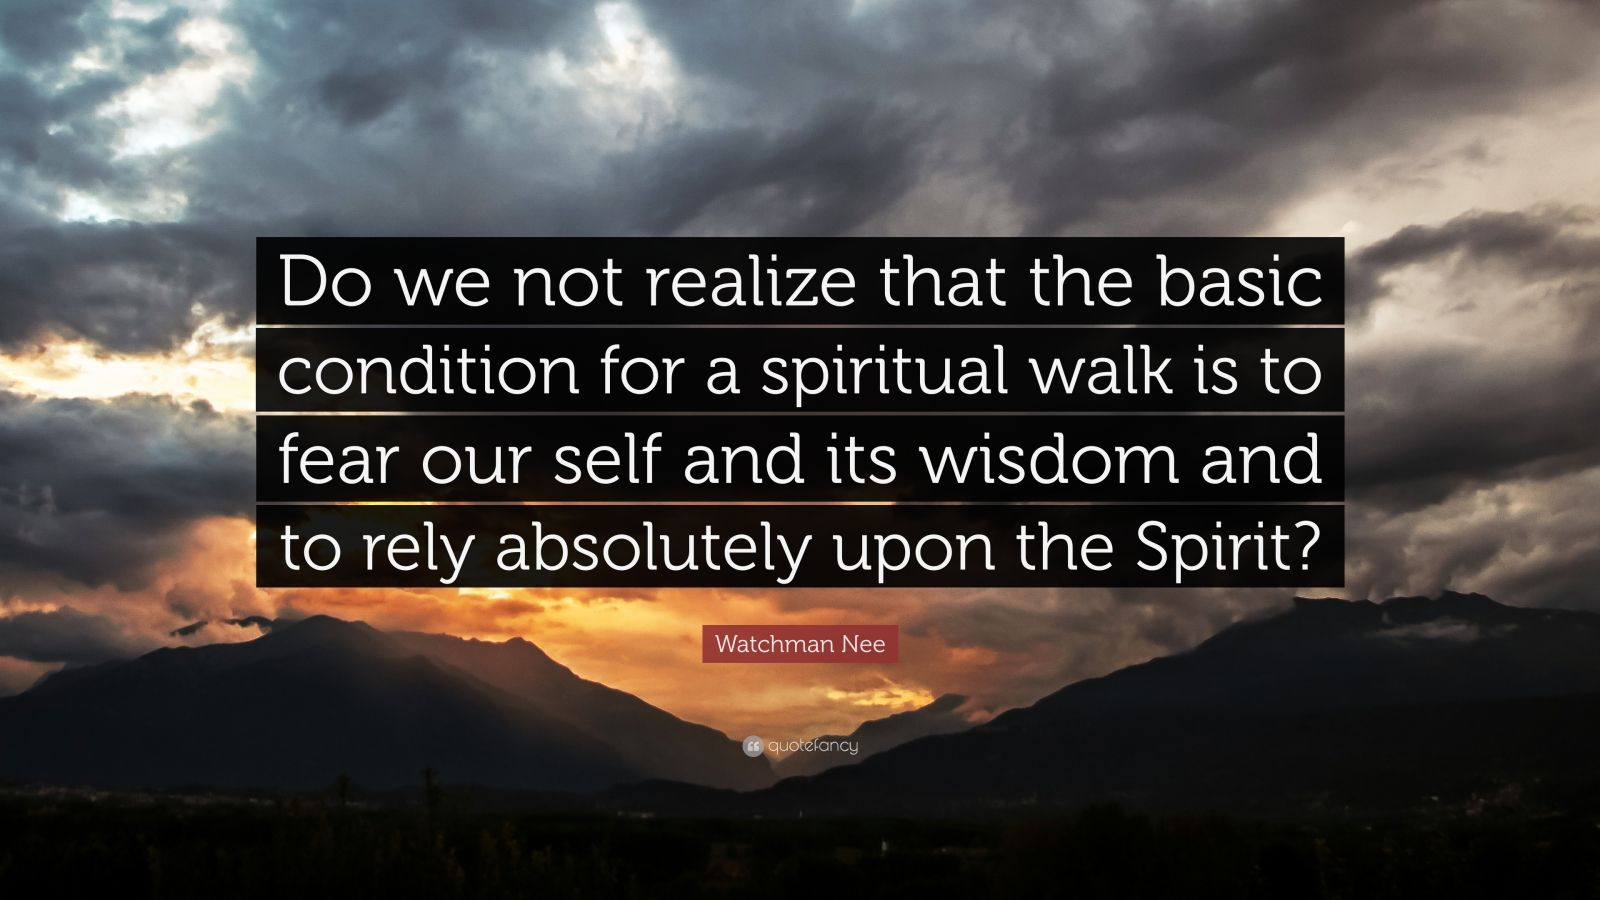 """Watchman Nee Quote: """"Do we not realize that the basic condition for a spiritual walk is to fear our self and its wisdom and to rely absolutely upon the Spirit?"""""""